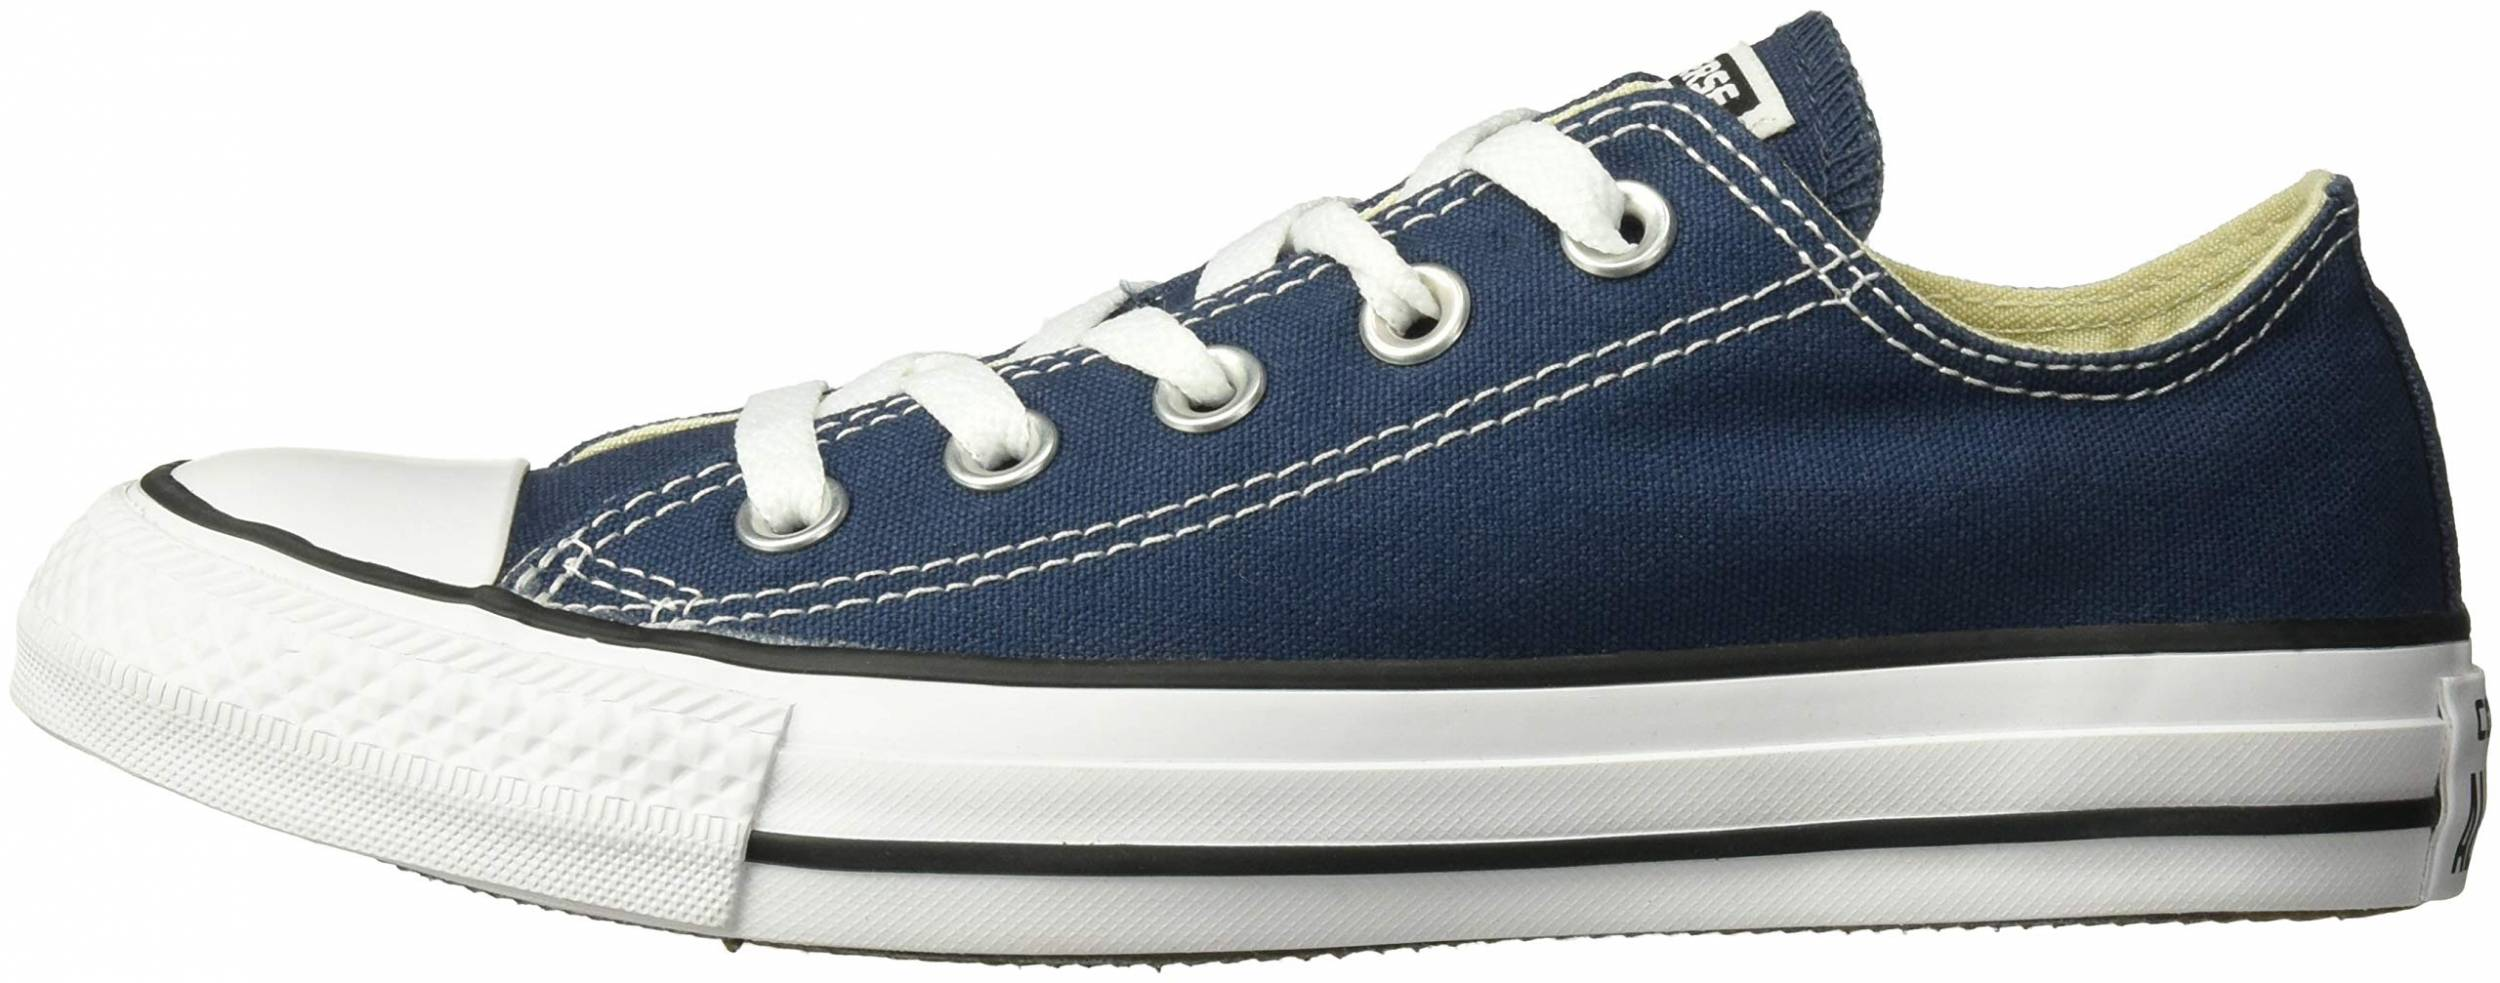 Save 12% on Blue Converse Sneakers (16